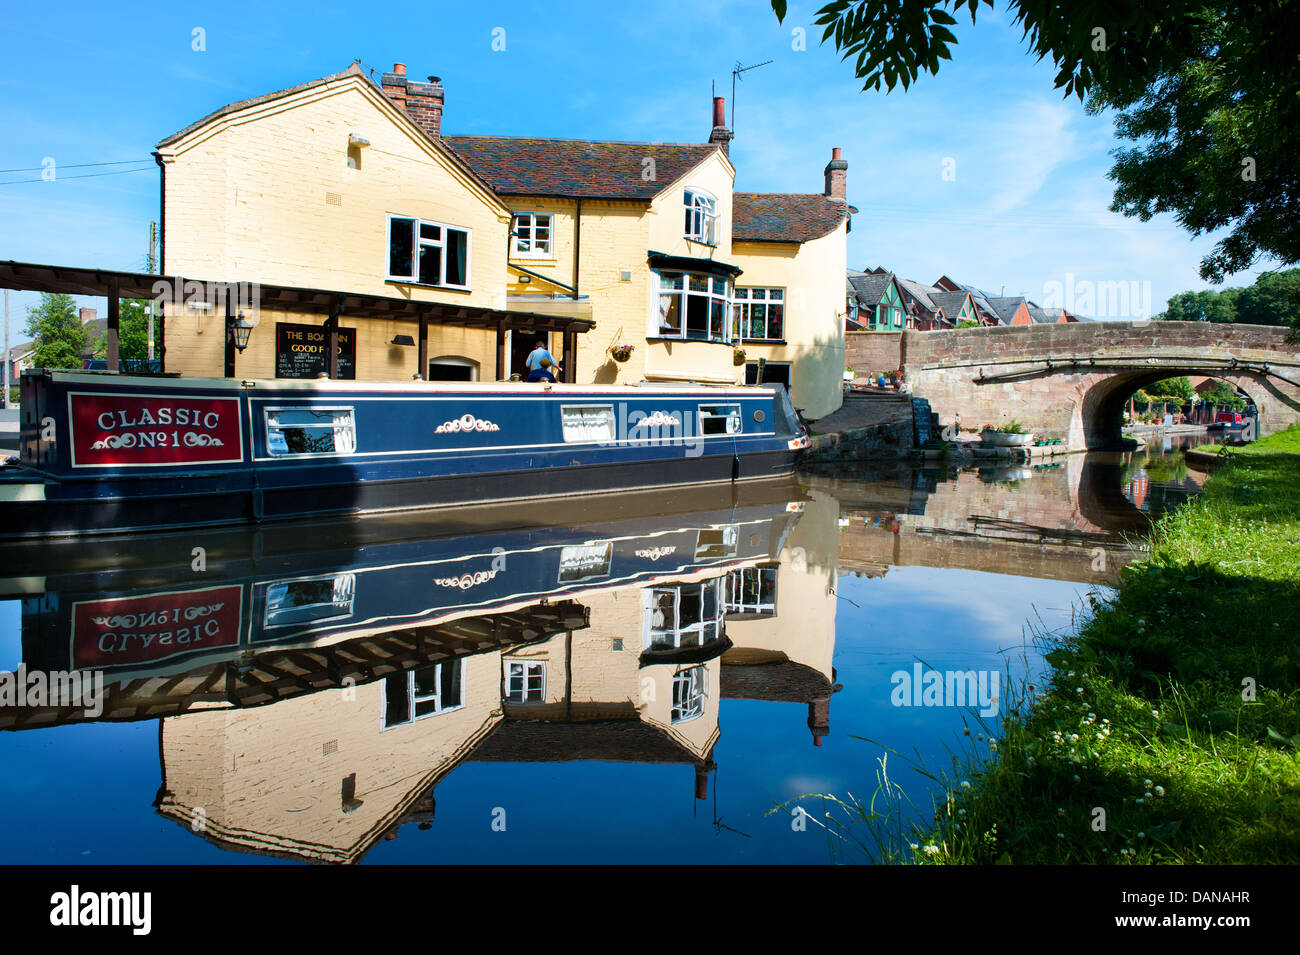 A canal boat on the Shropshire Union Canal by The Boat Inn pub, Gnosall Bridge, Staffordshire - Stock Image